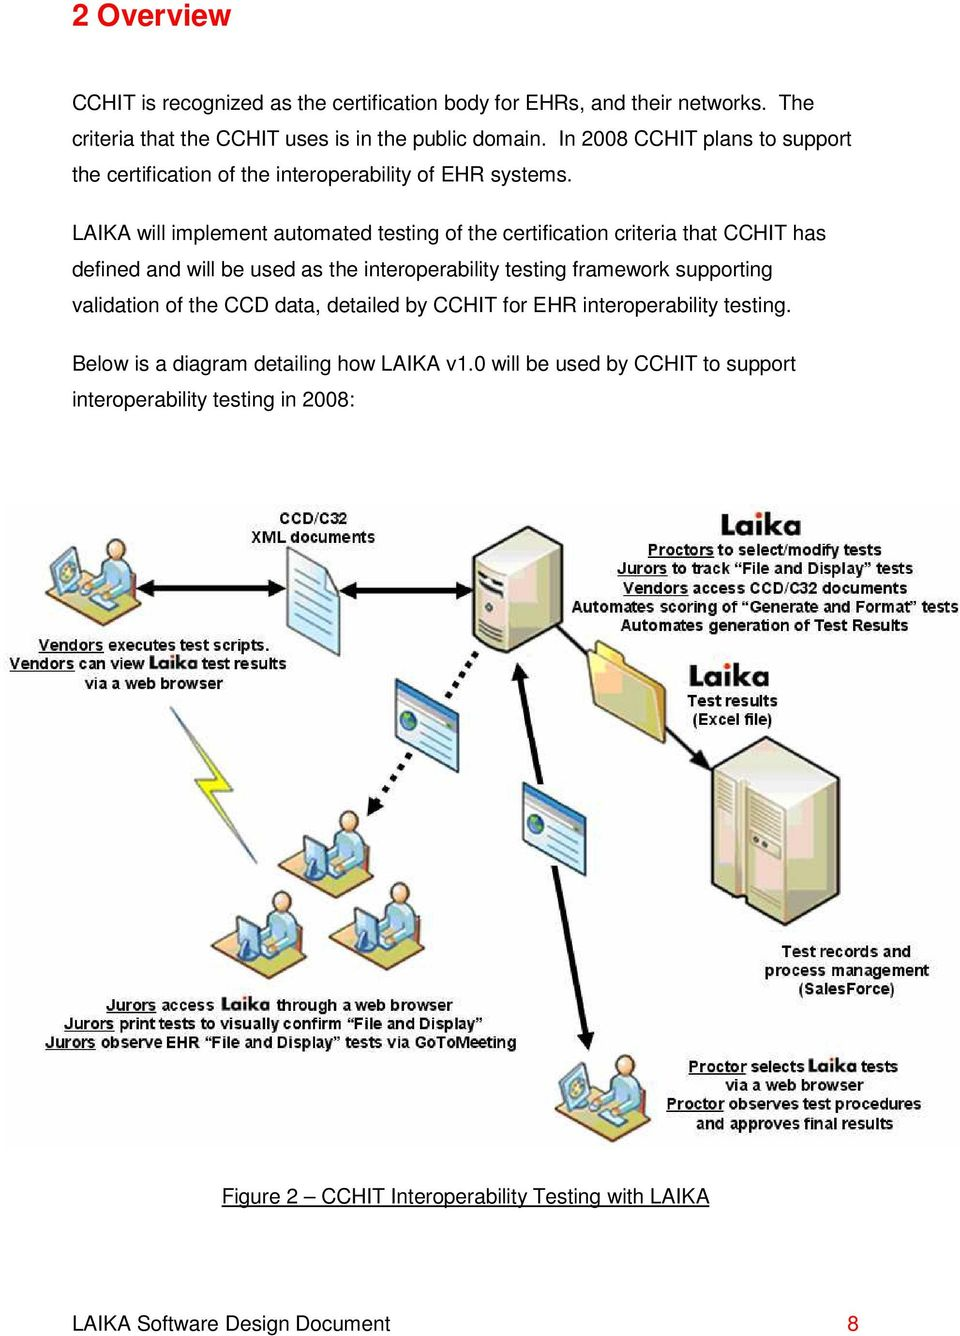 LAIKA will implement automated testing of the certification criteria that CCHIT has defined and will be used as the interoperability testing framework supporting